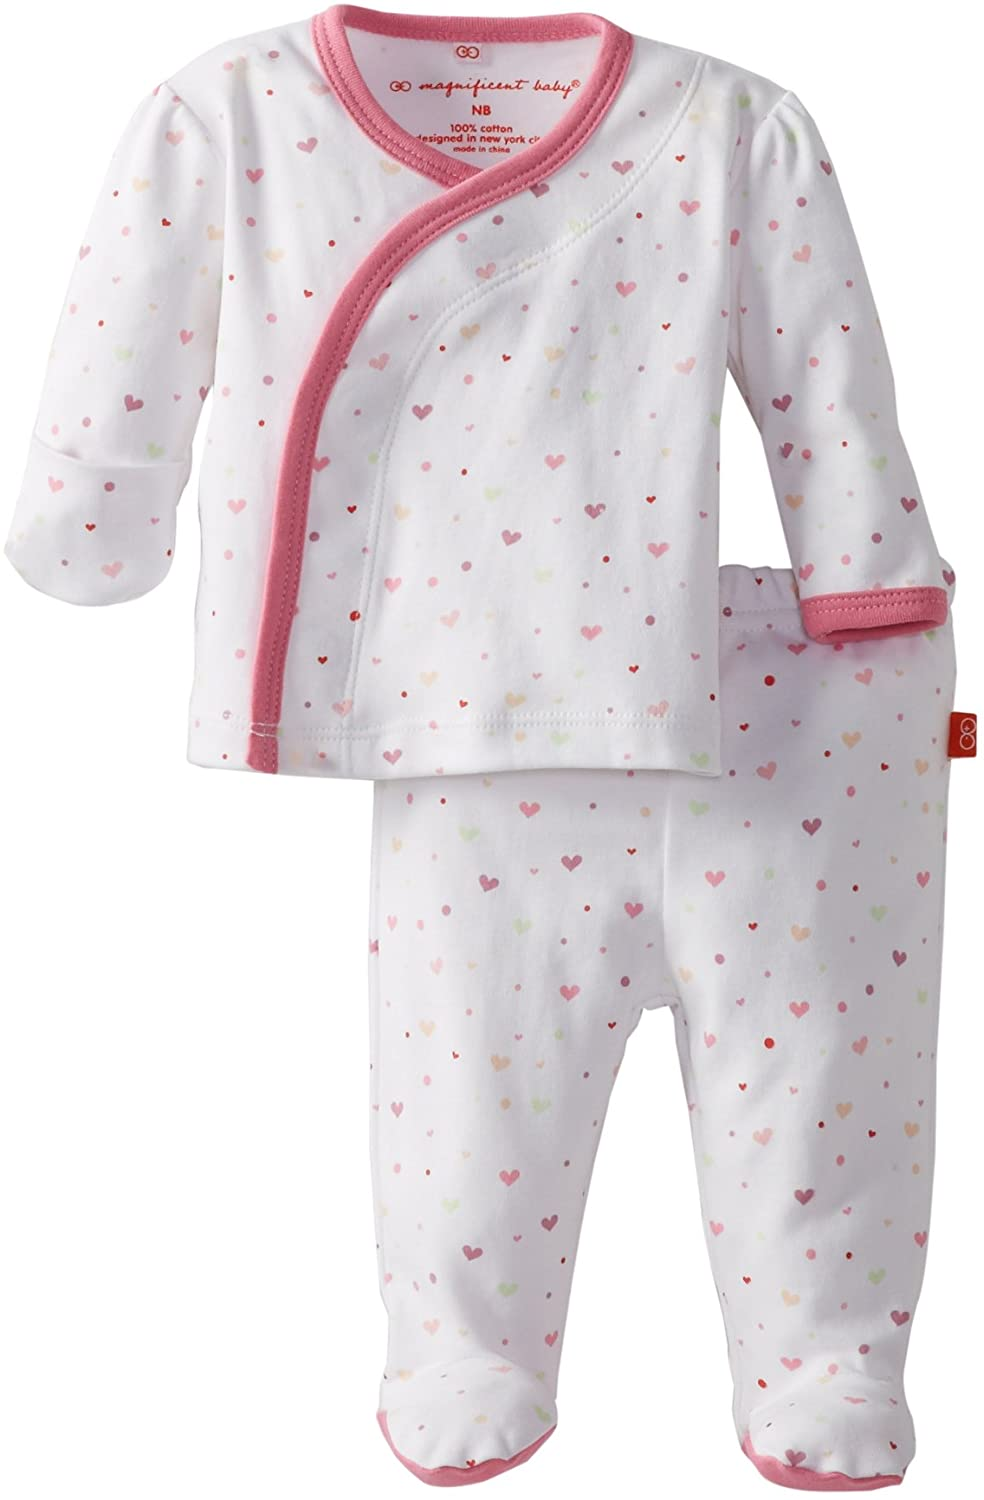 Magnificent Baby Baby-Girls Newborn Long Sleeve Kimono Set with Pant, Hearts, New Born